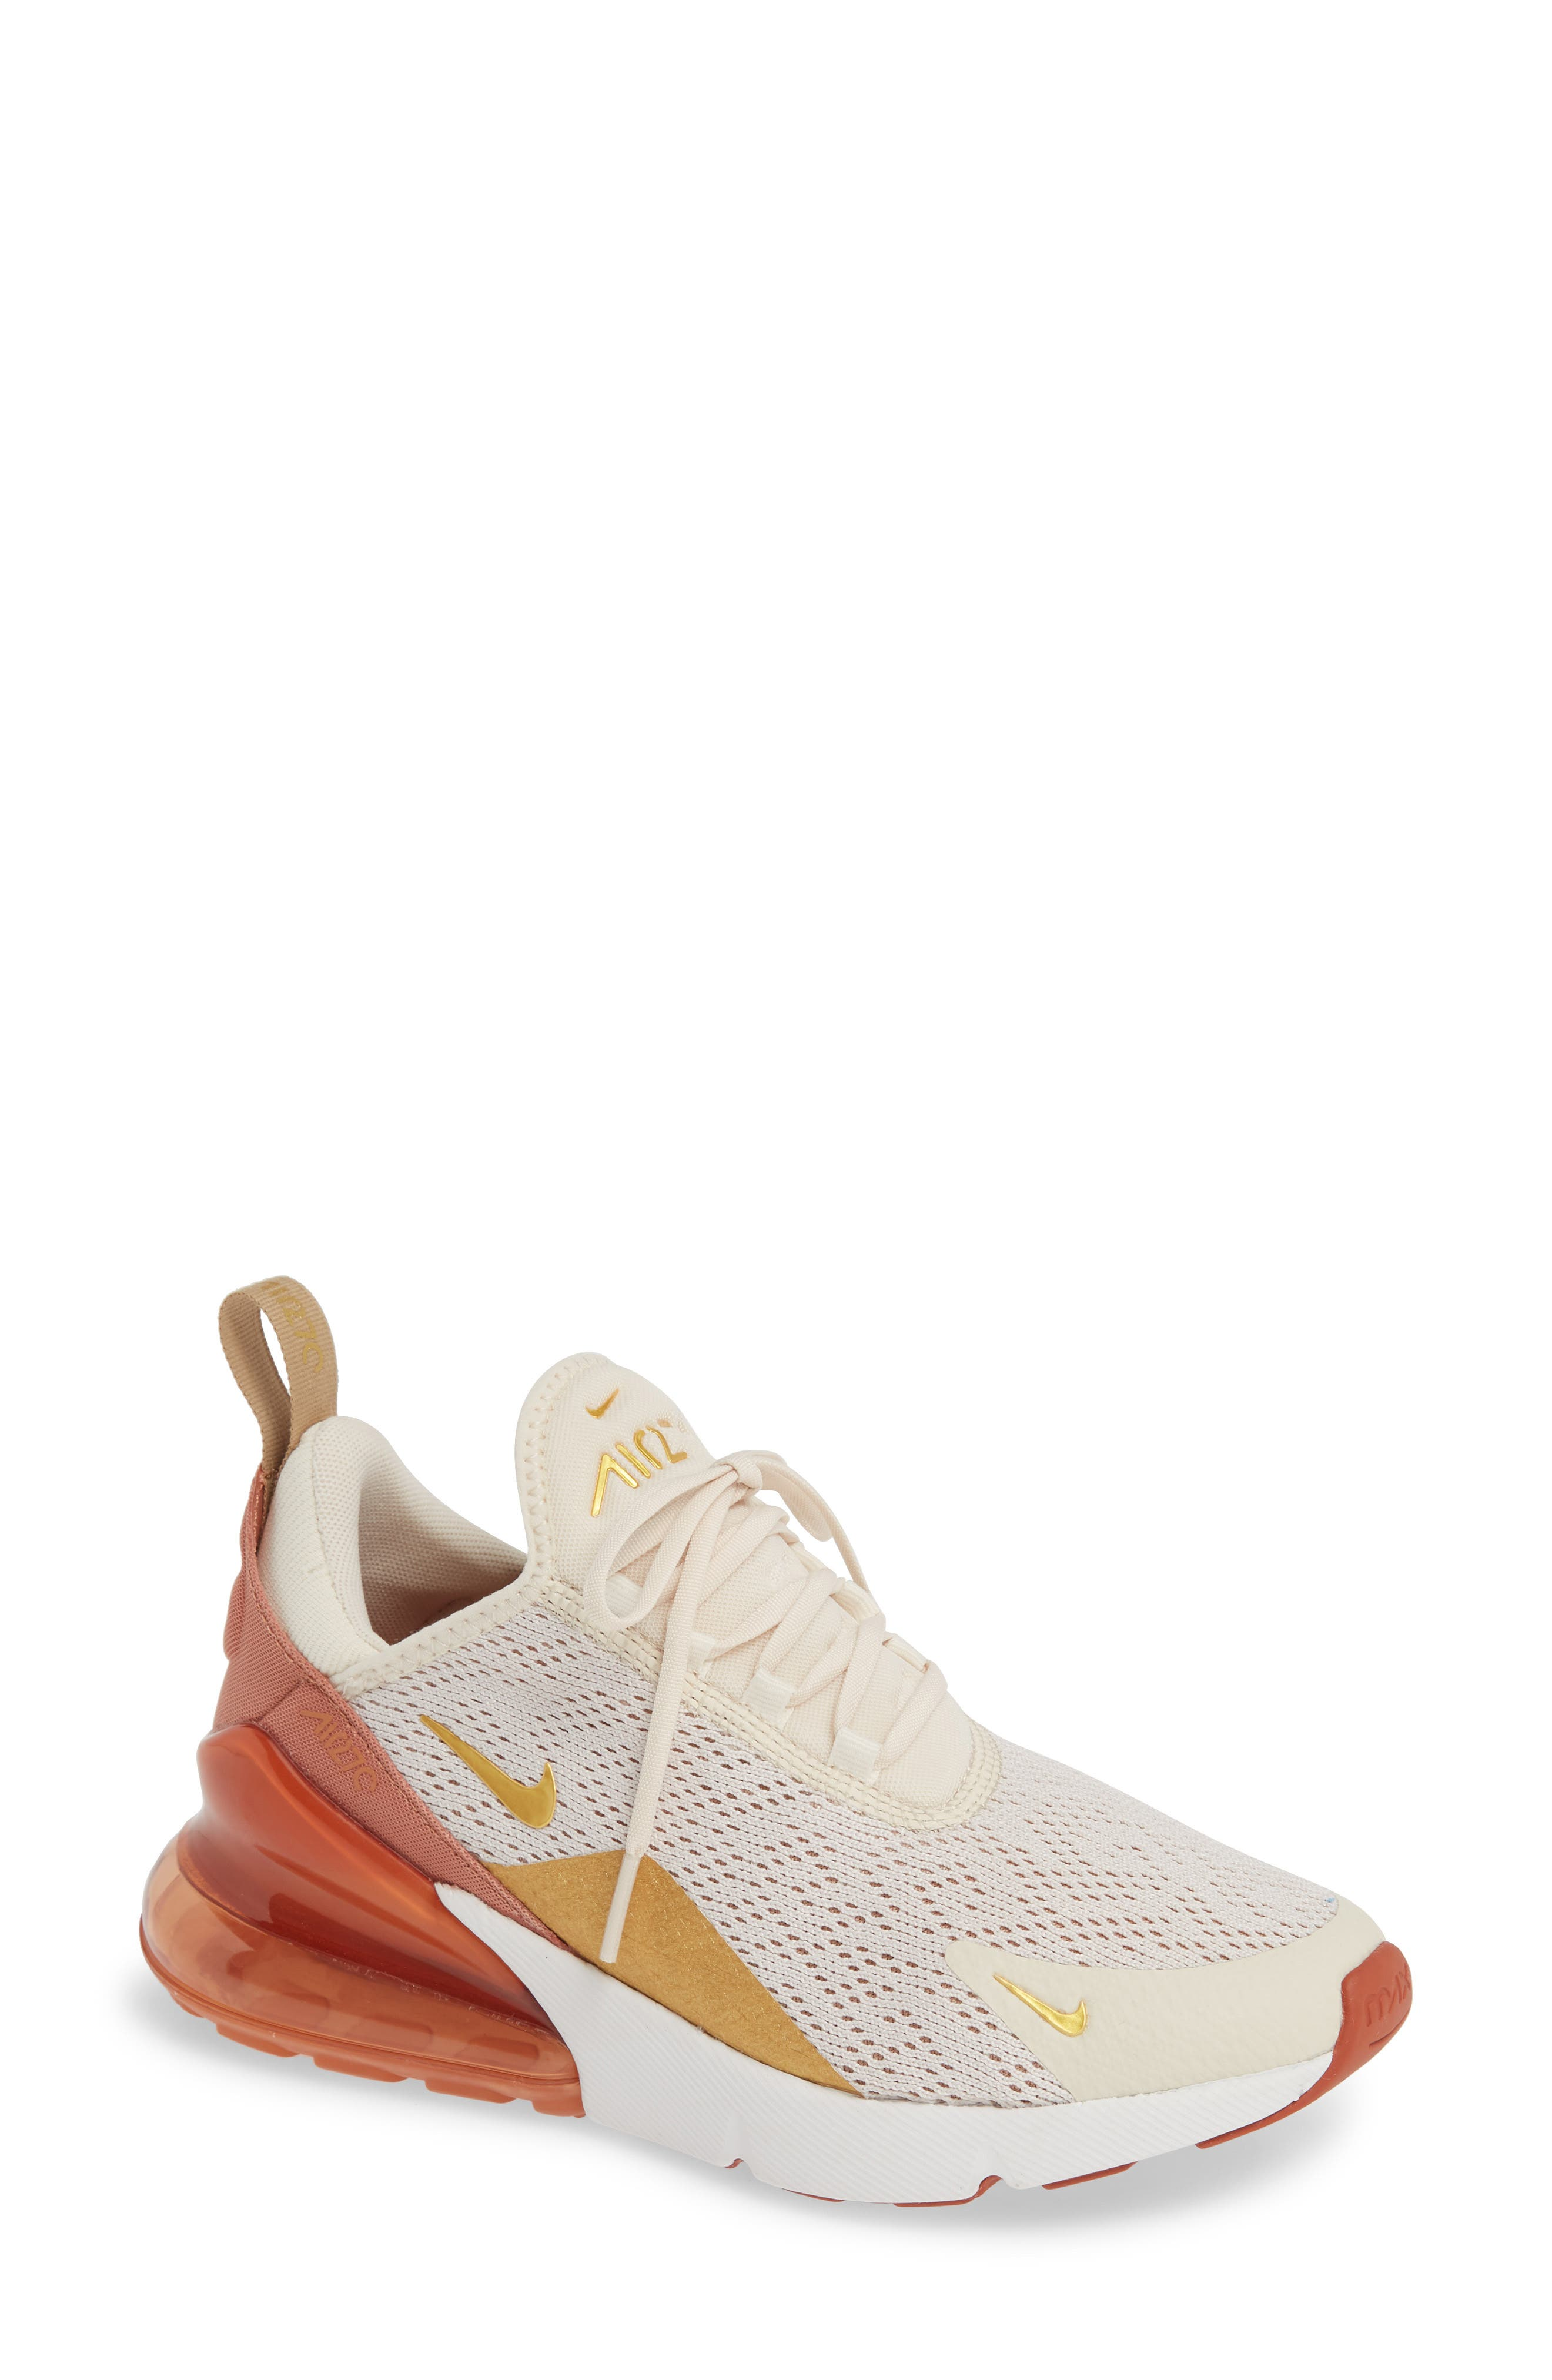 big sale fd7bf 42944 Womens Nike New Arrivals Clothing, Shoes  Beauty  Nordstrom